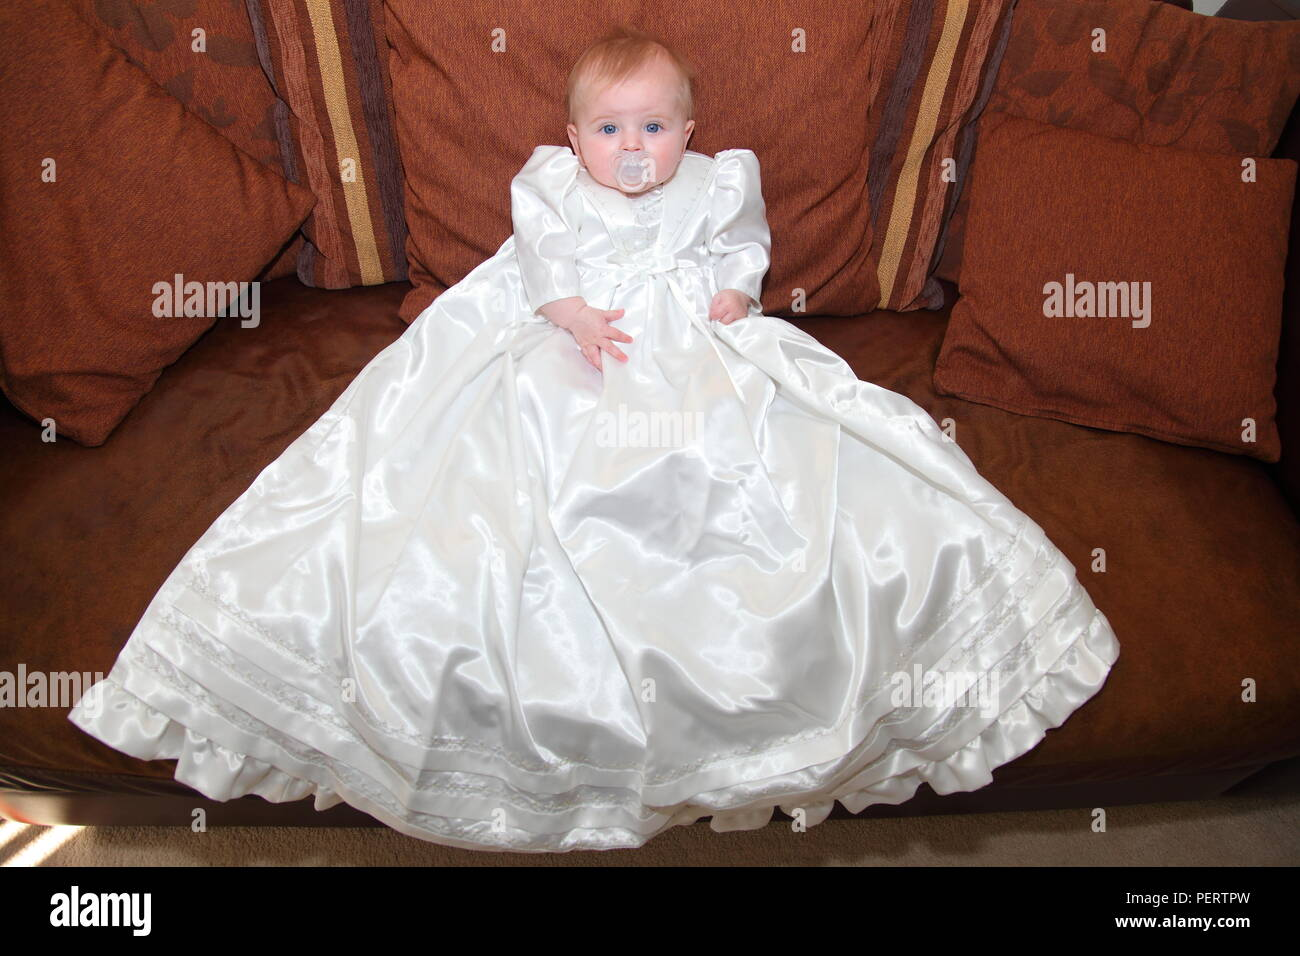 6 month old baby girl in her christening gown - Stock Image